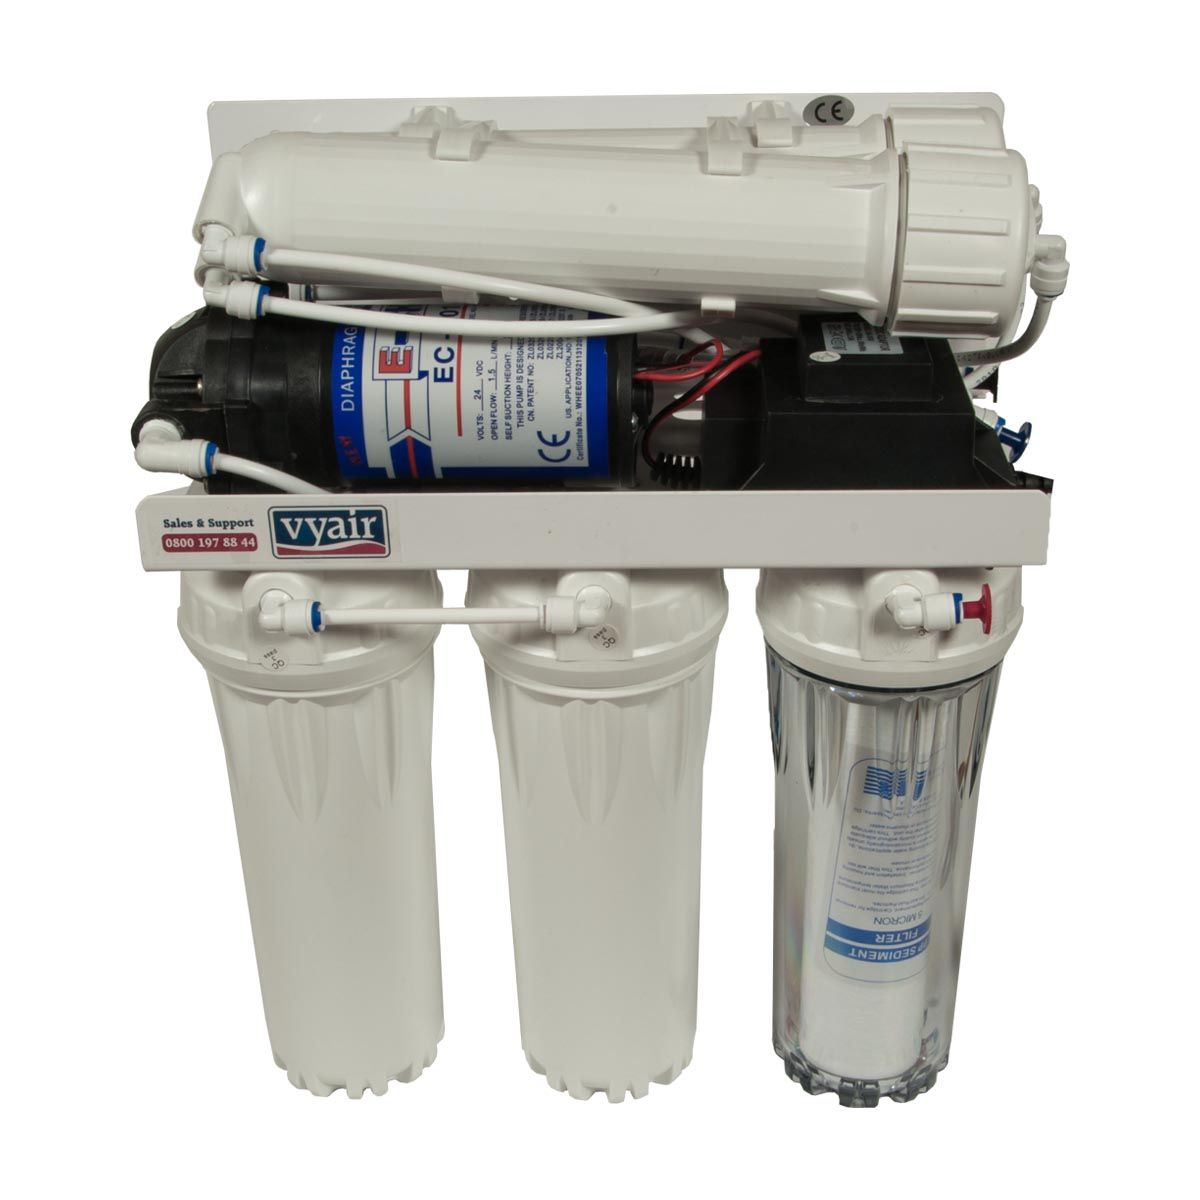 200gpd Reverse Osmosis Water Filter System - RO-200 for  from Kitsu Koi